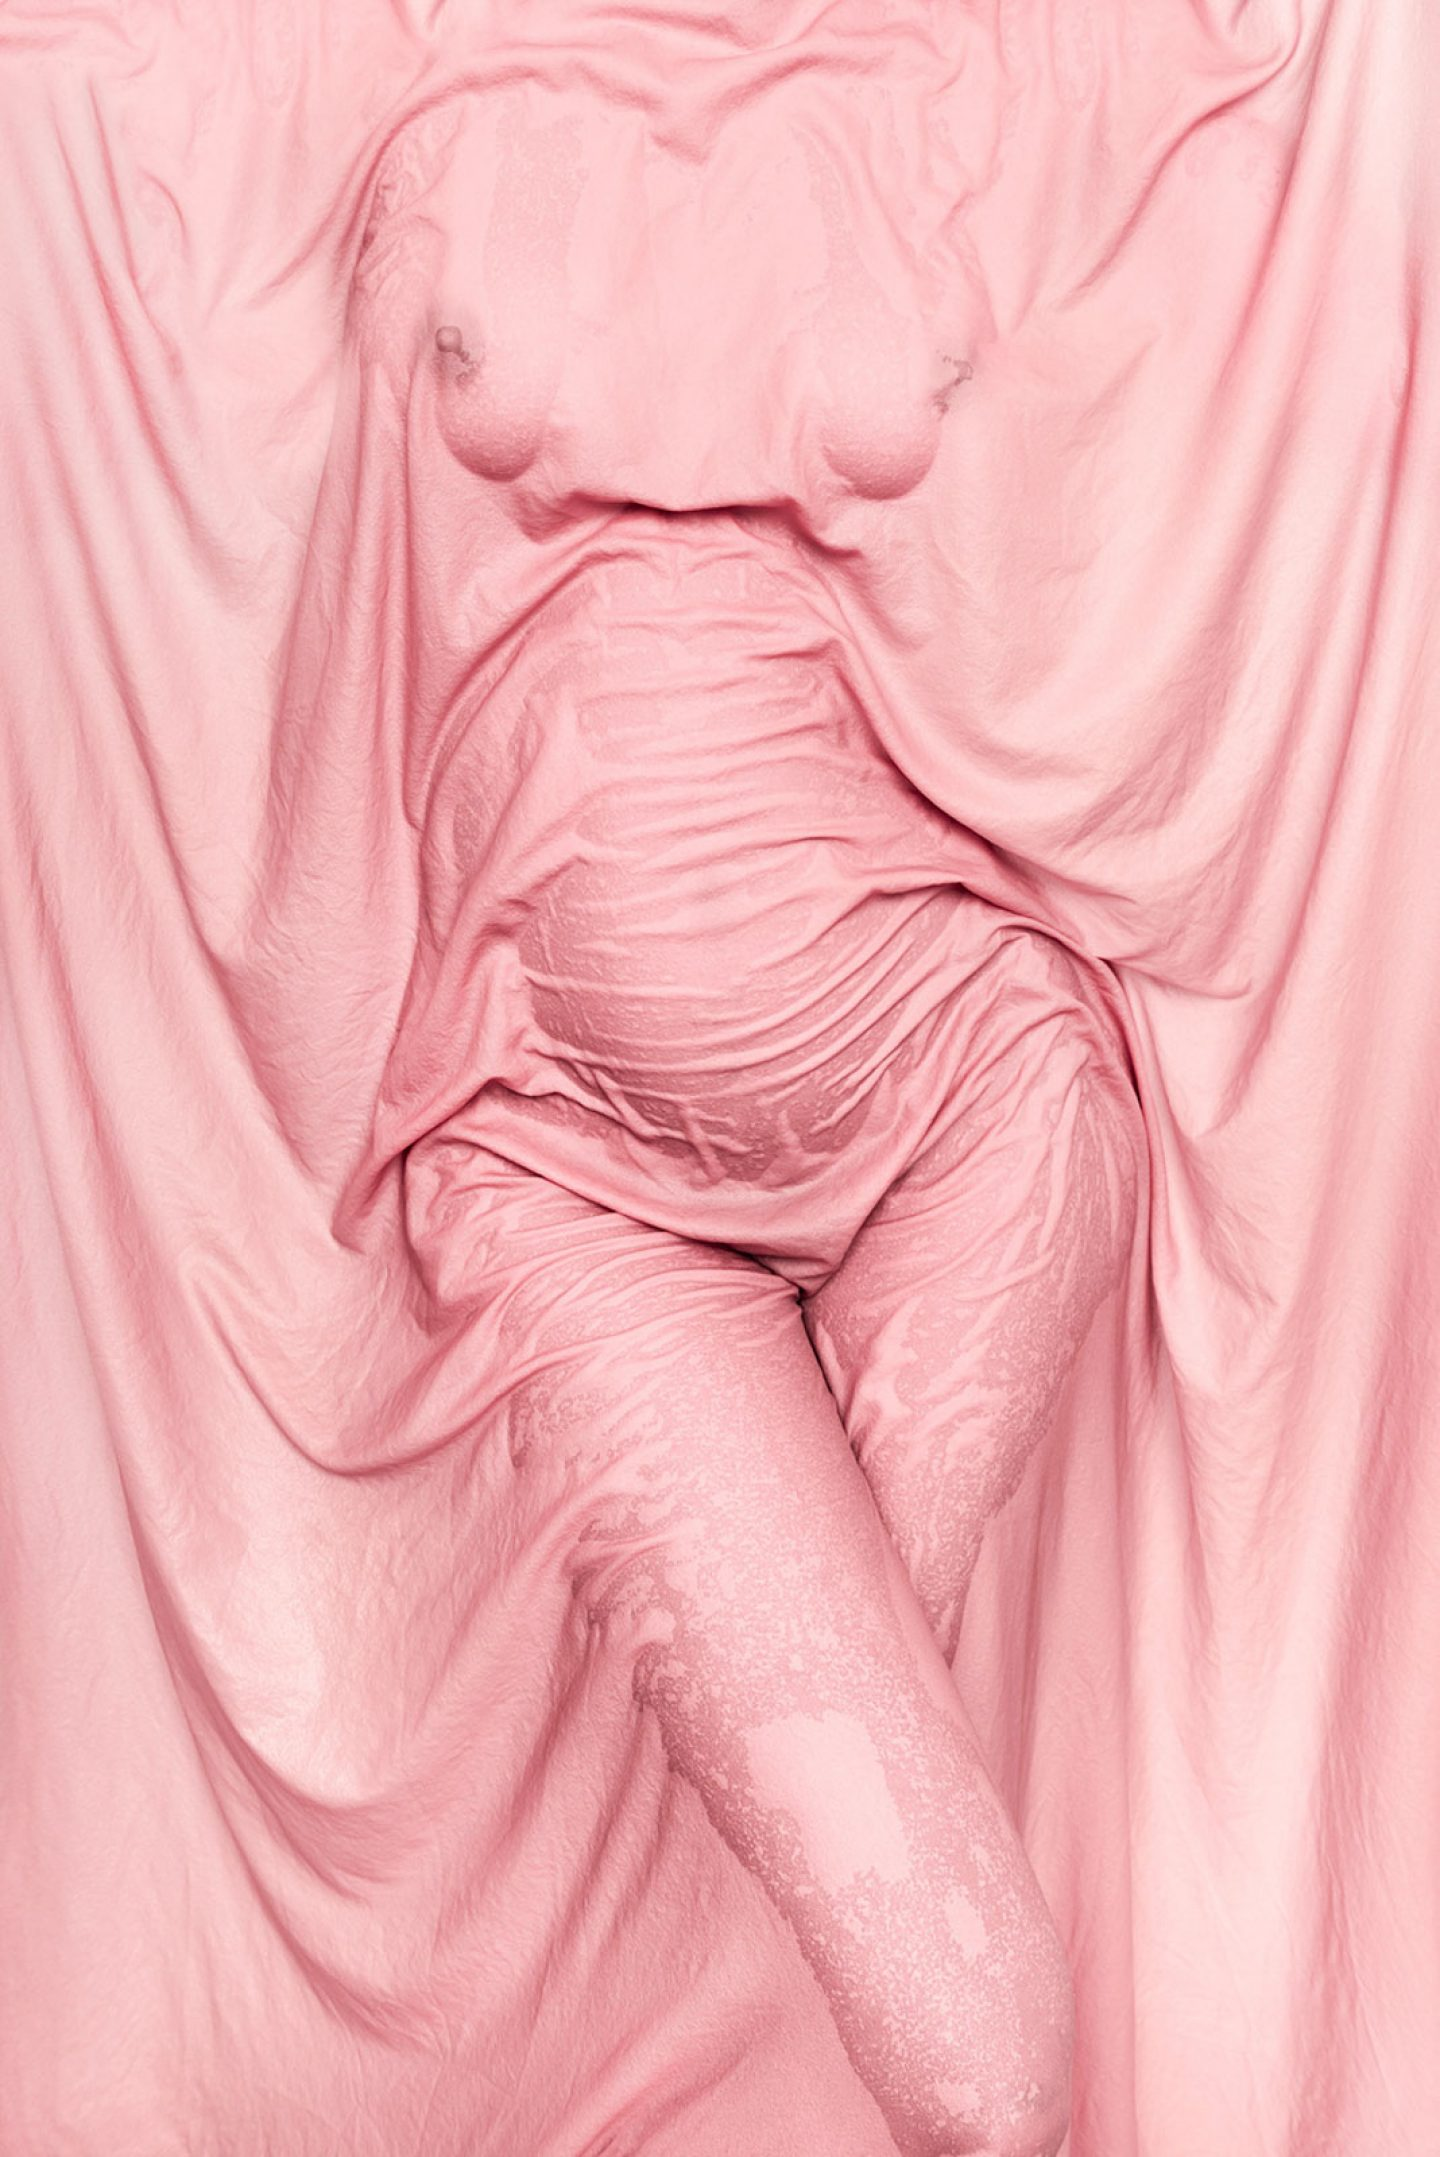 iGNANT_Photography_Prue_Stent_Honey_Long_Soft_Tissue_ (9 von 10)